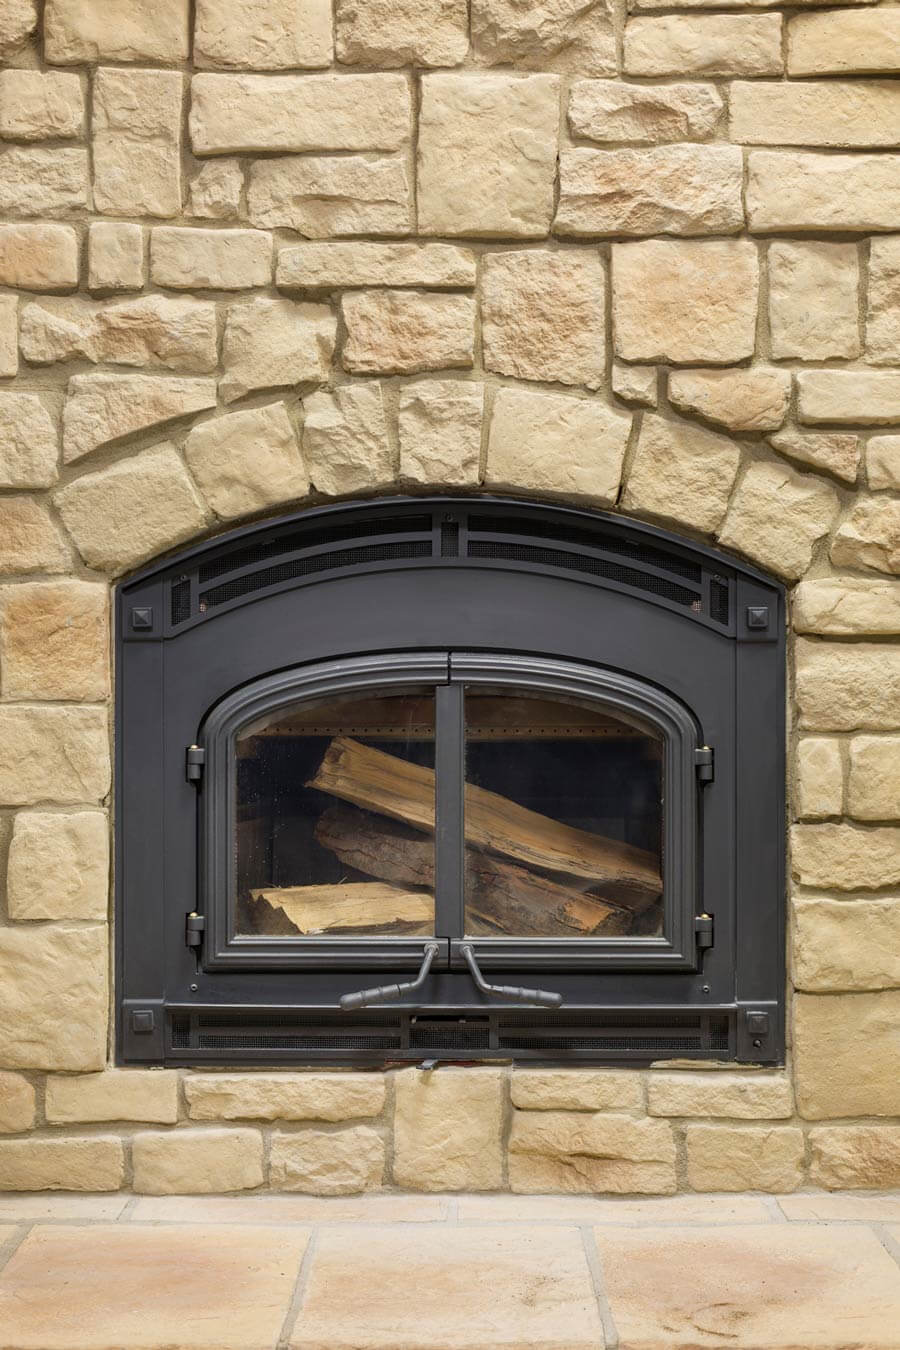 Installing Cultured Stone Fireplace Manufactured Stone Veneer Kansas City Thin Cut Natural Stone Veneer